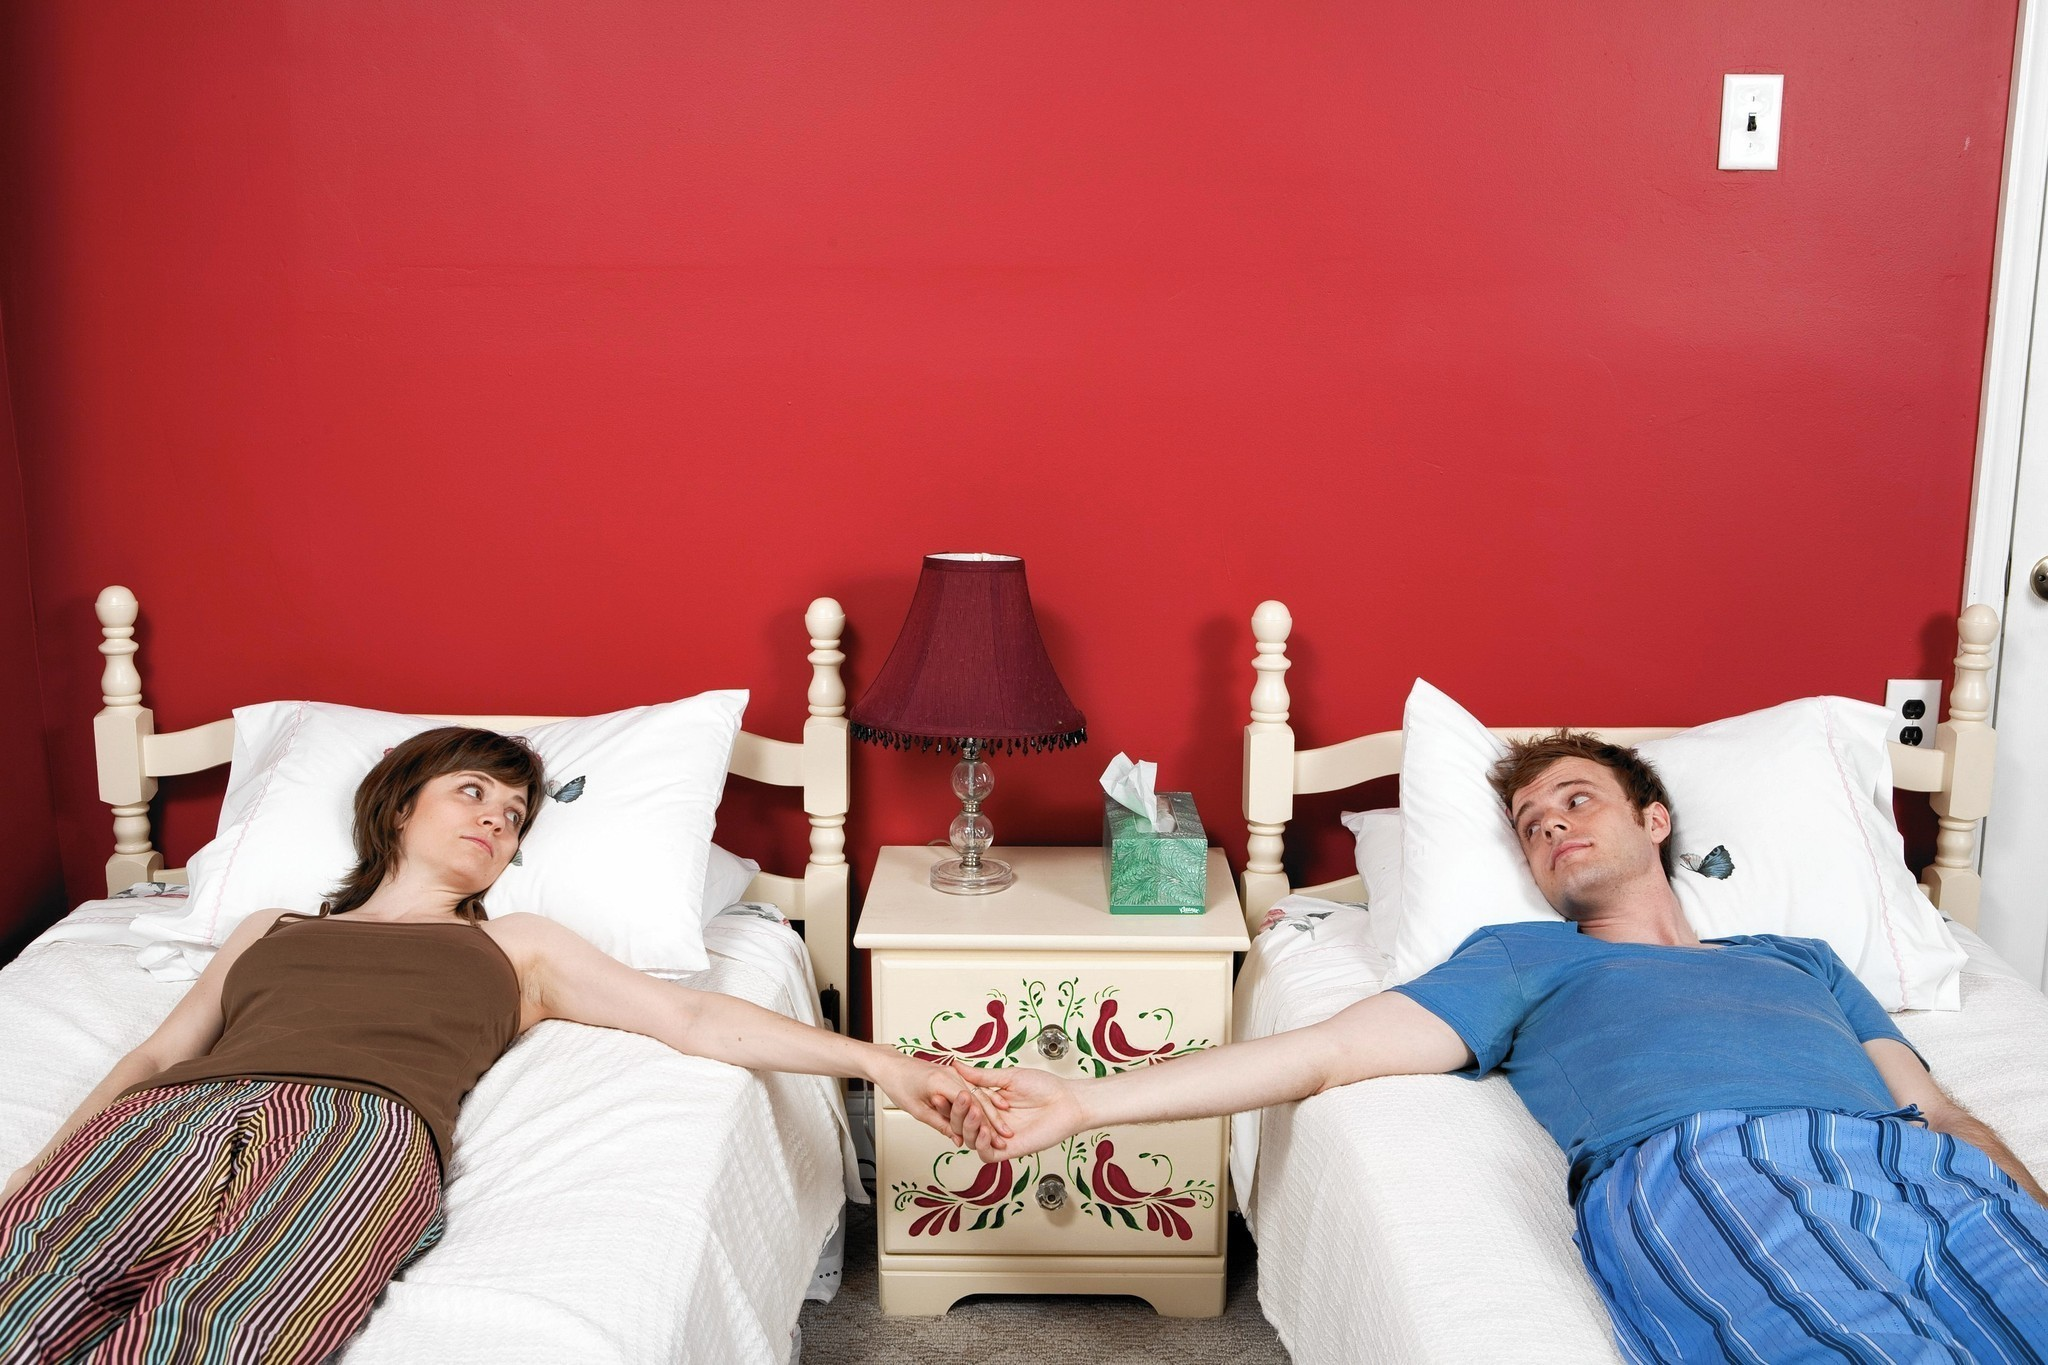 Happy couples separate beds The joy of sleeping apart